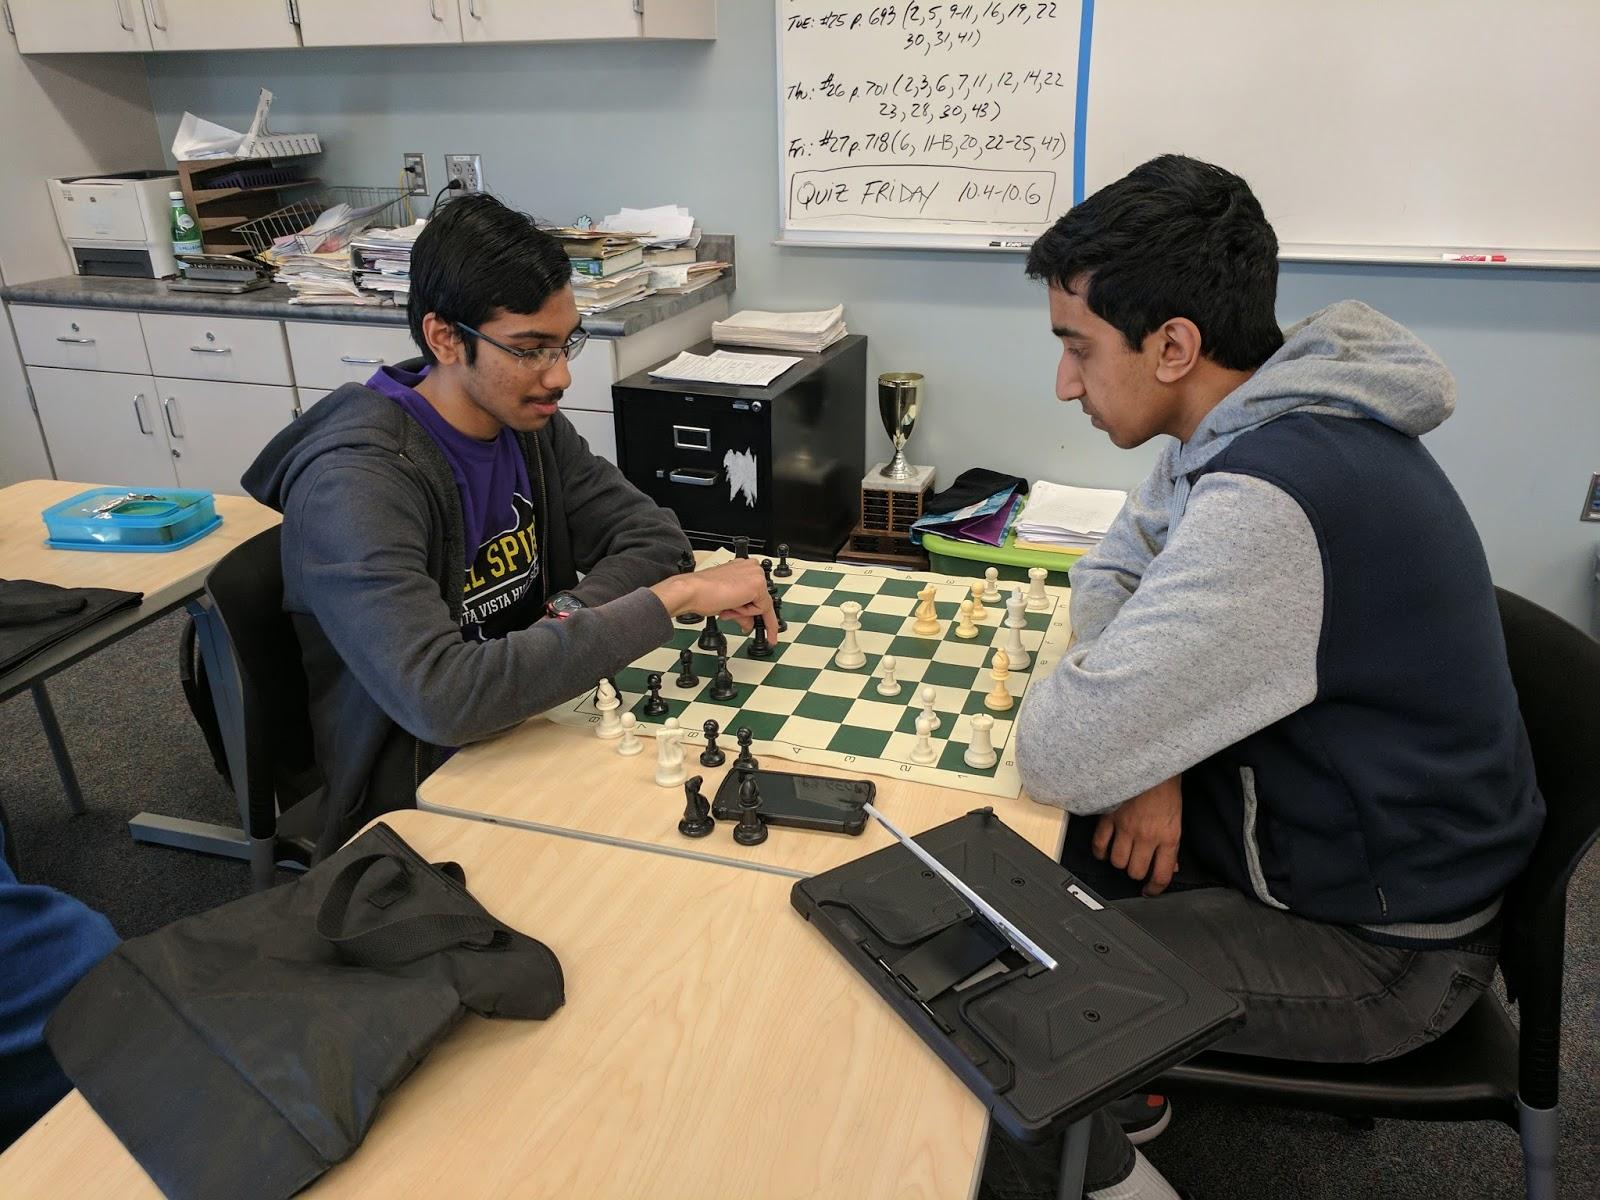 Sophomore Samyak Karnavat (left) and Senior Kesav Viswanadha (right) play a friendly game of chess at lunch while discussing strategy. Practice was a vital part of keeping one's mind sharp and flexible for future games.